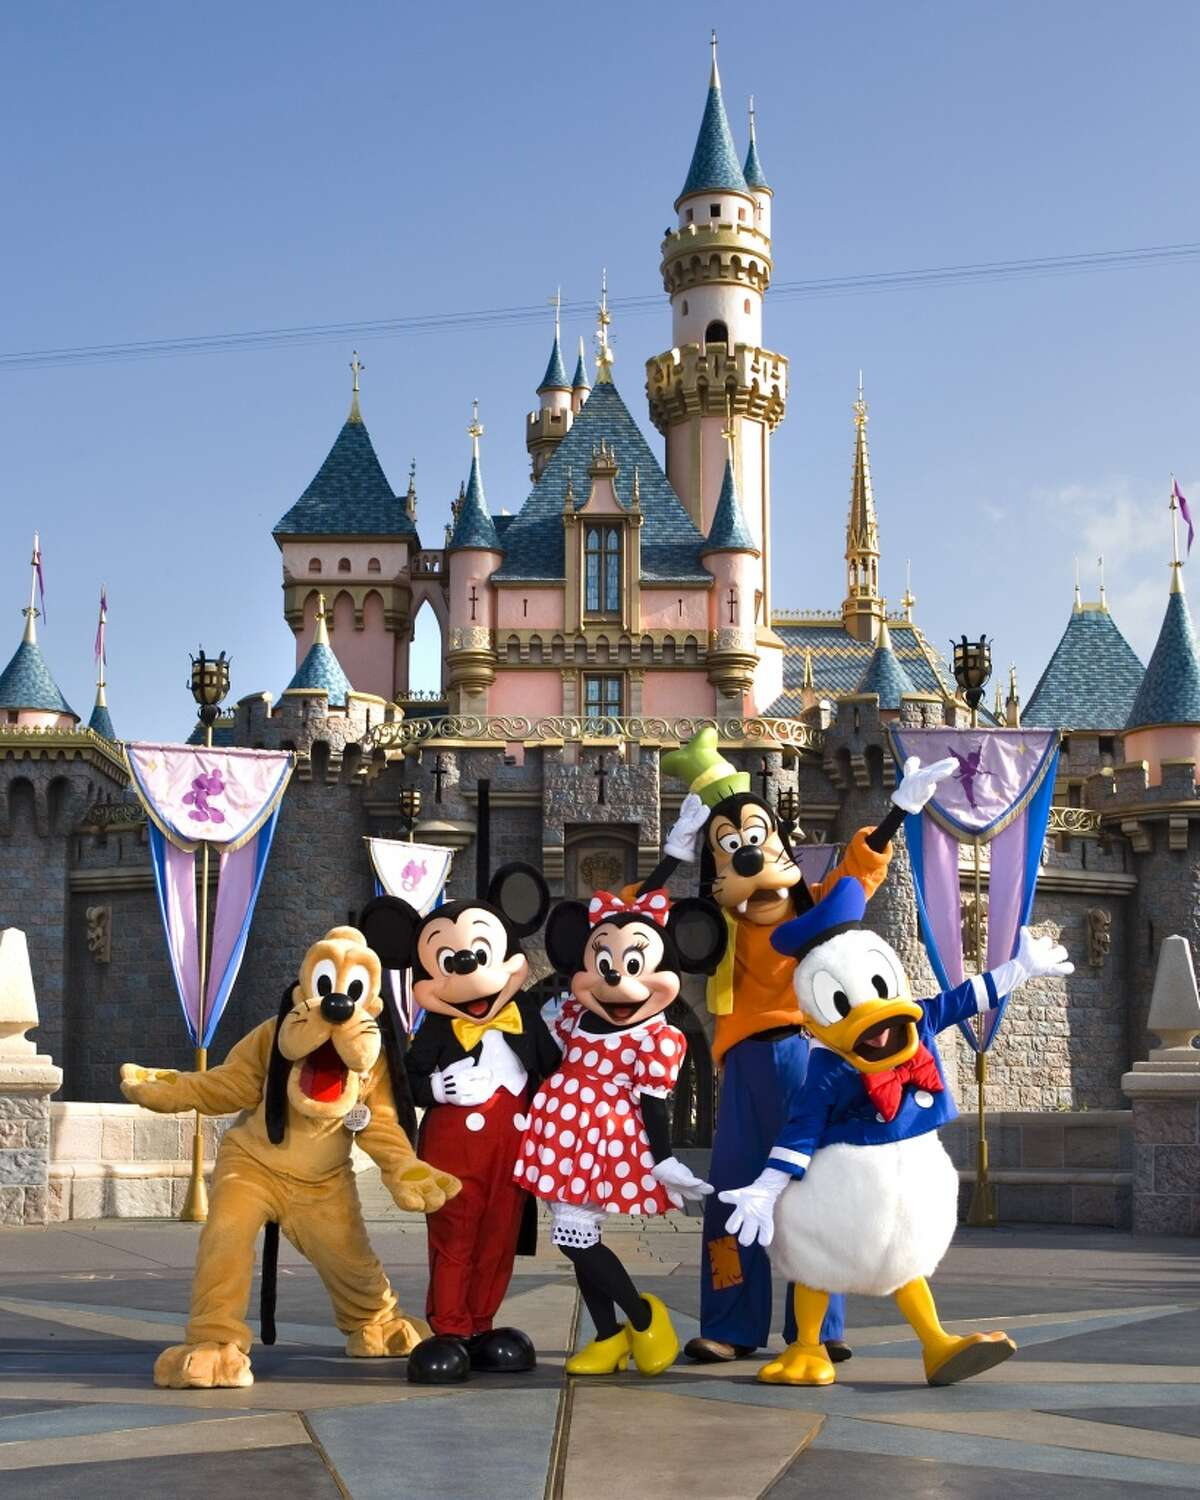 15. Disneyland face character Average salary: $32,000 Duties: Work at Disneyland and perform as a famous character Requirements: Acting skills, height and appearance regulations Source: SAVOO